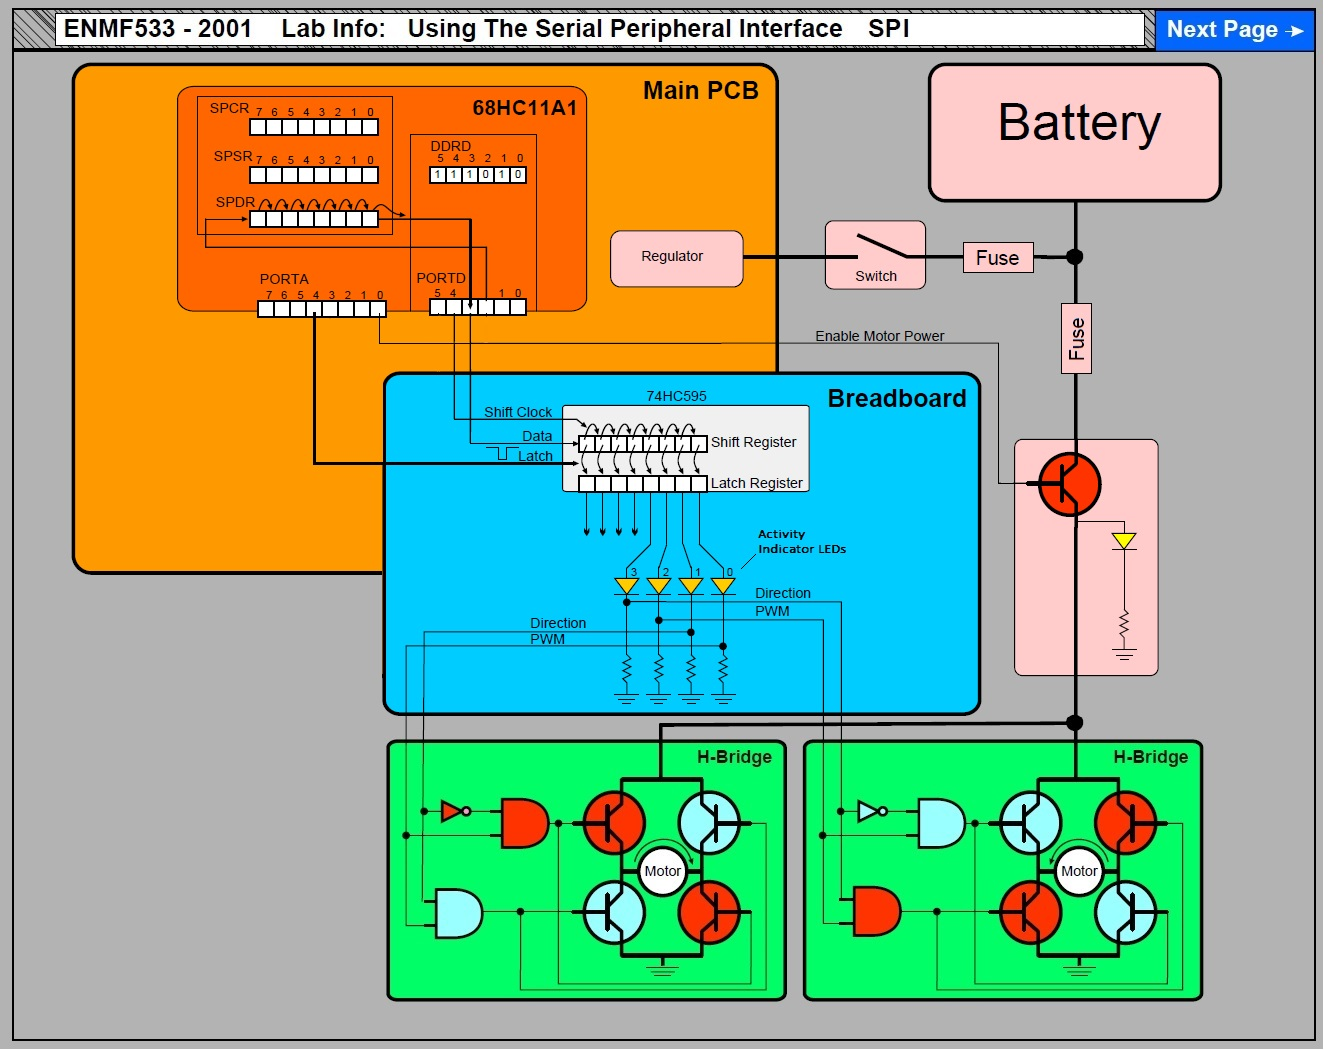 Tm4c123gxl H Bridge Motor Direction Control Other Microcontrollers Pwm Driver Amplifier It Is Such A Complete Hbridge Sketch From 15 Years Ago To Illustrate Elements Of Automation Mechanical Students